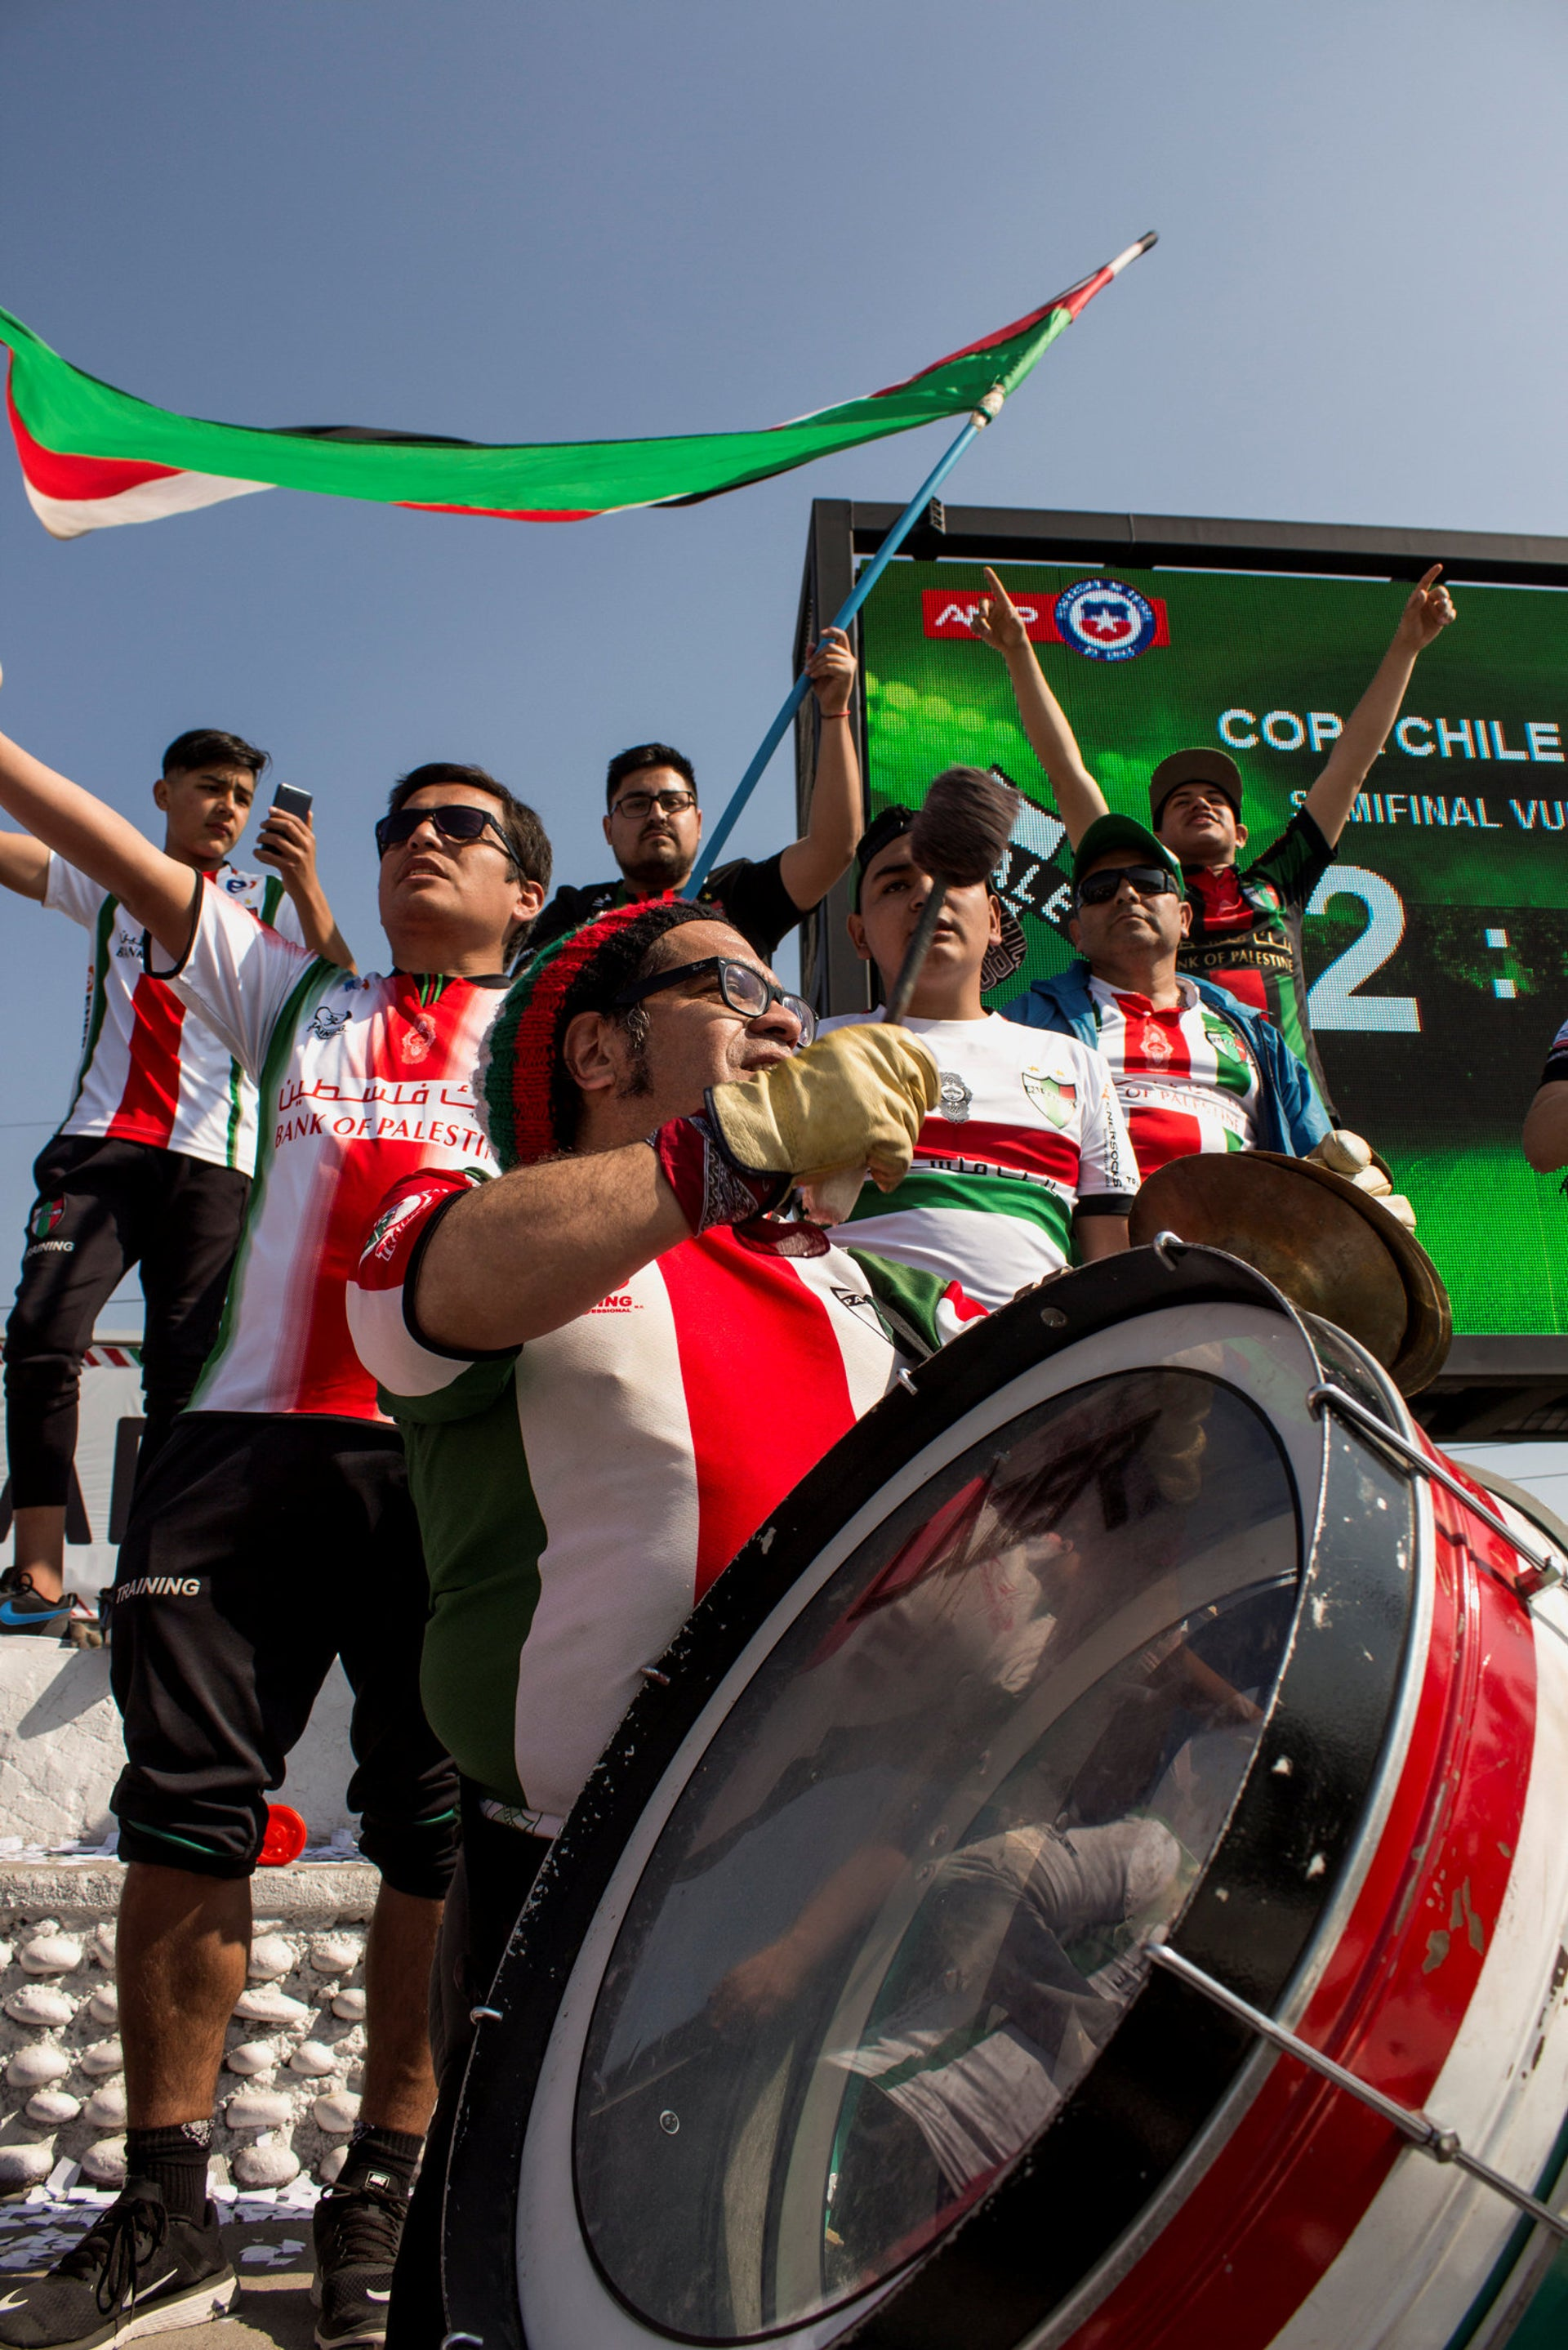 People attend a Deportivo Palestino soccer game. The team was founded a century ago by Palestinian immigrants.